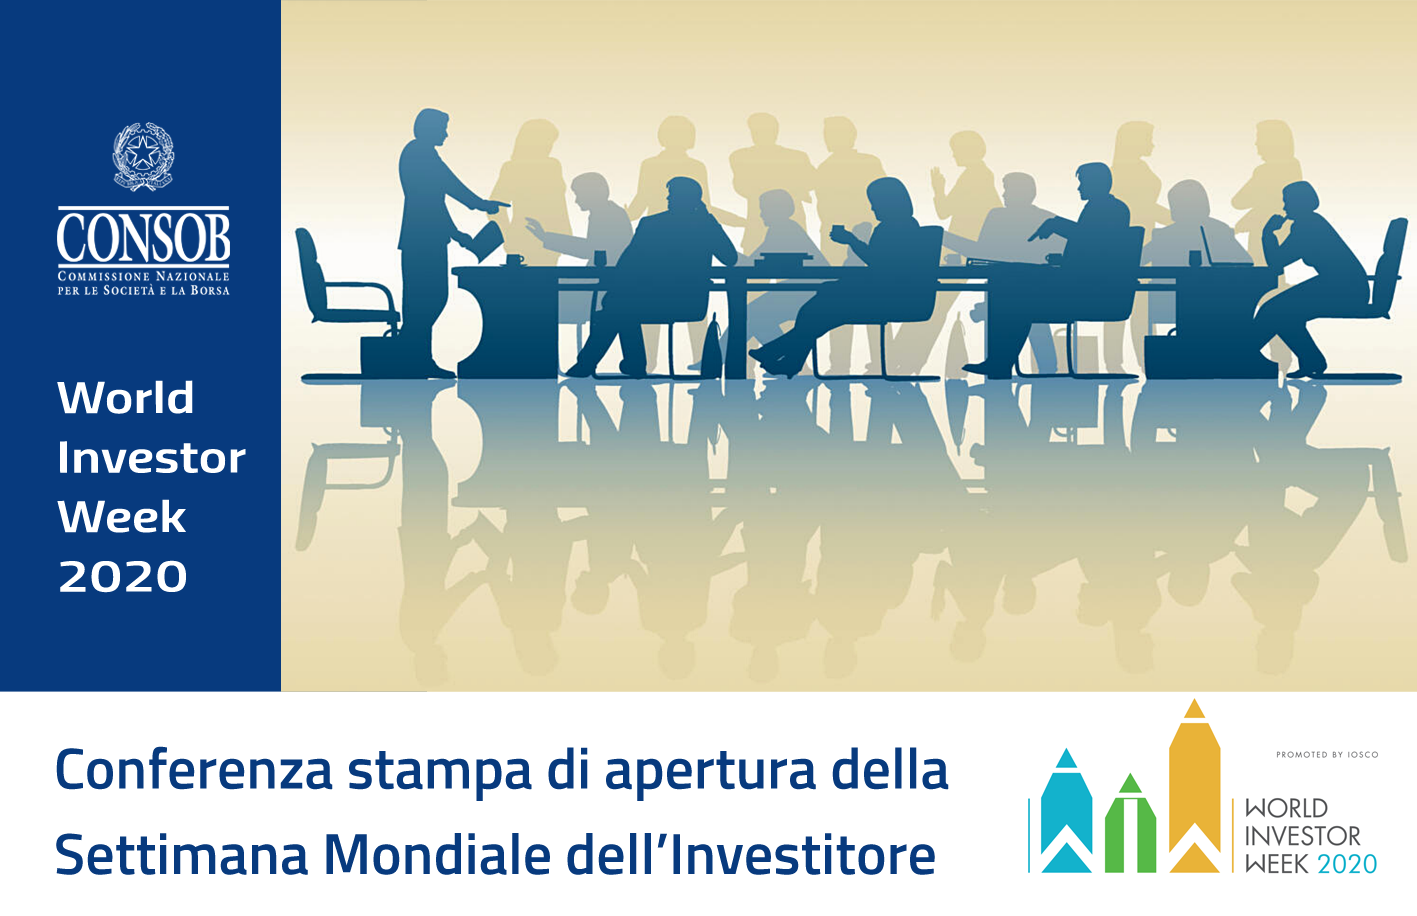 Conferenza stampa di apertura della World Investor Week 2020